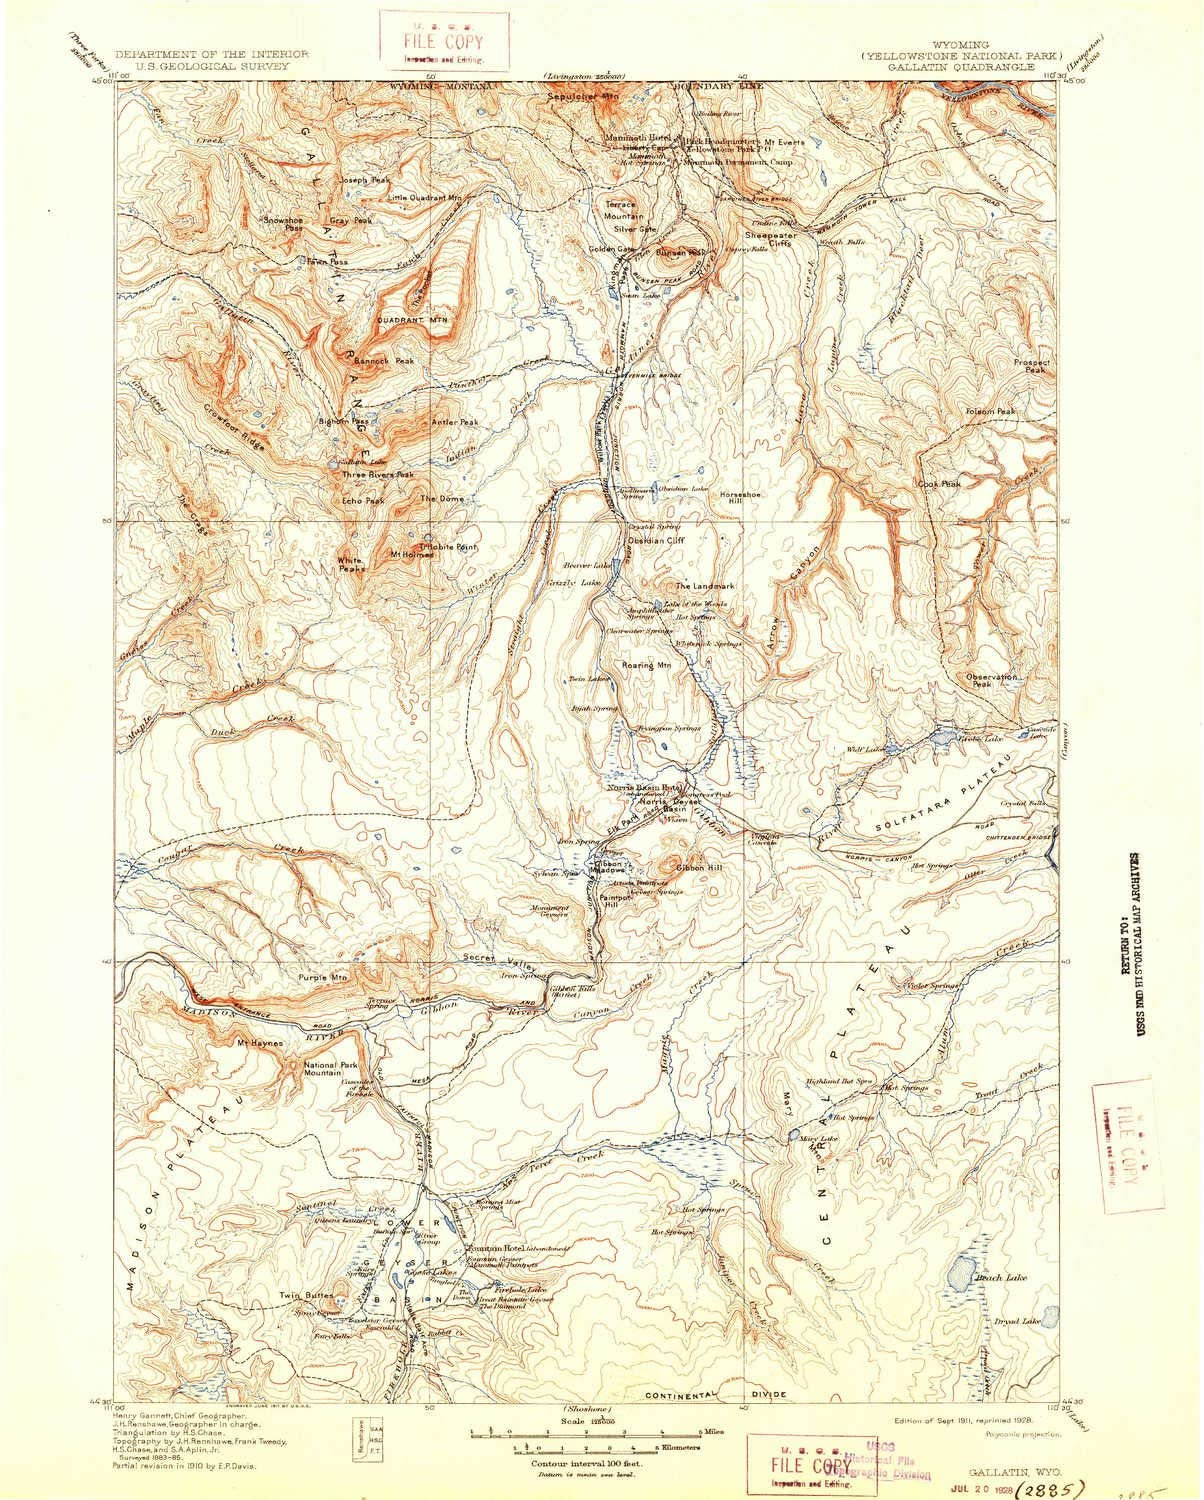 YellowMaps Gallatin WY topo Clearance SALE! Limited time! Factory outlet map 1:125000 Scale Minute X 30